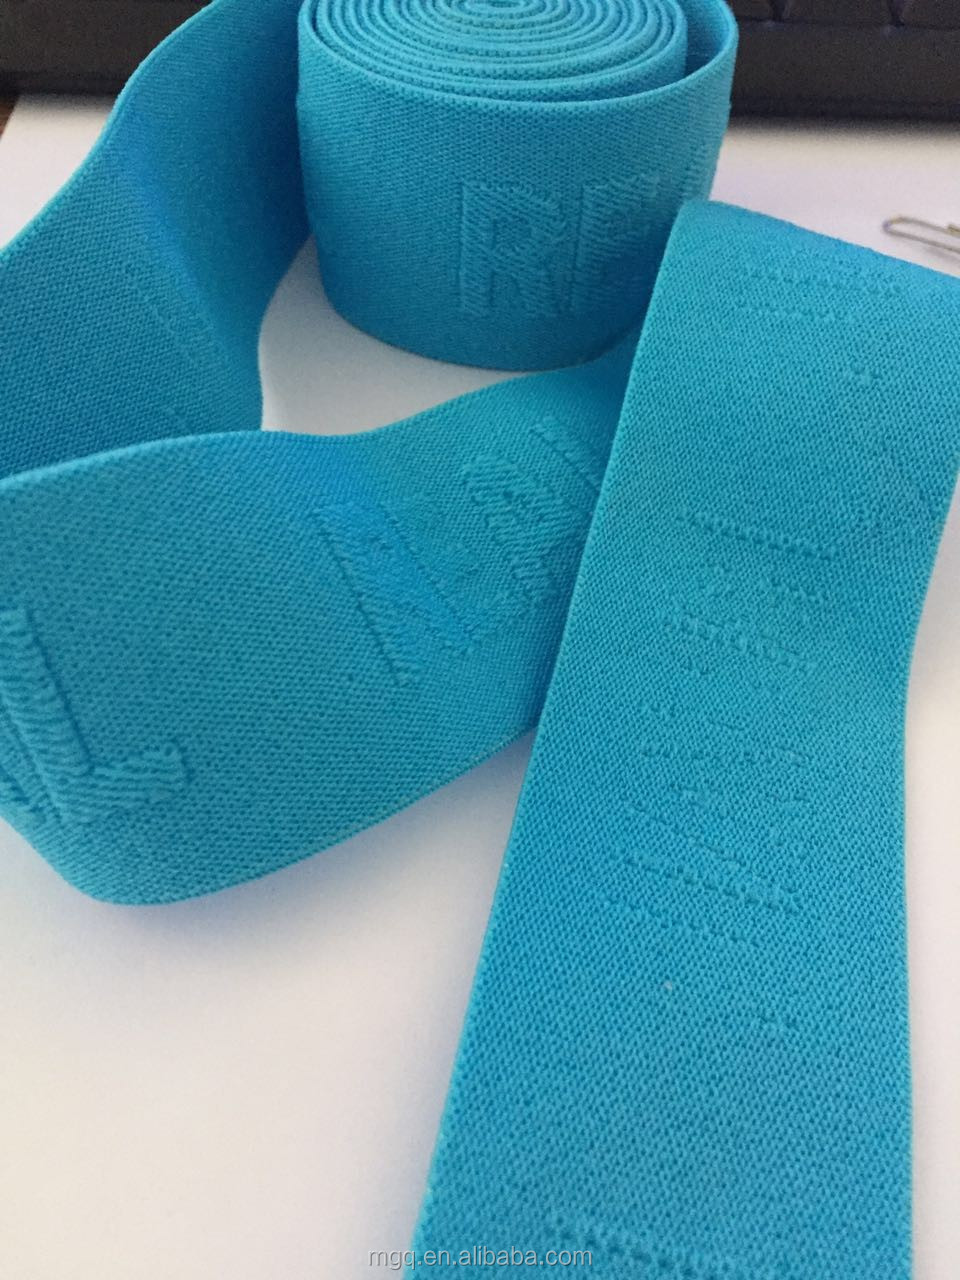 elastic band for underwear wristband wholesale jacquard blue webbing